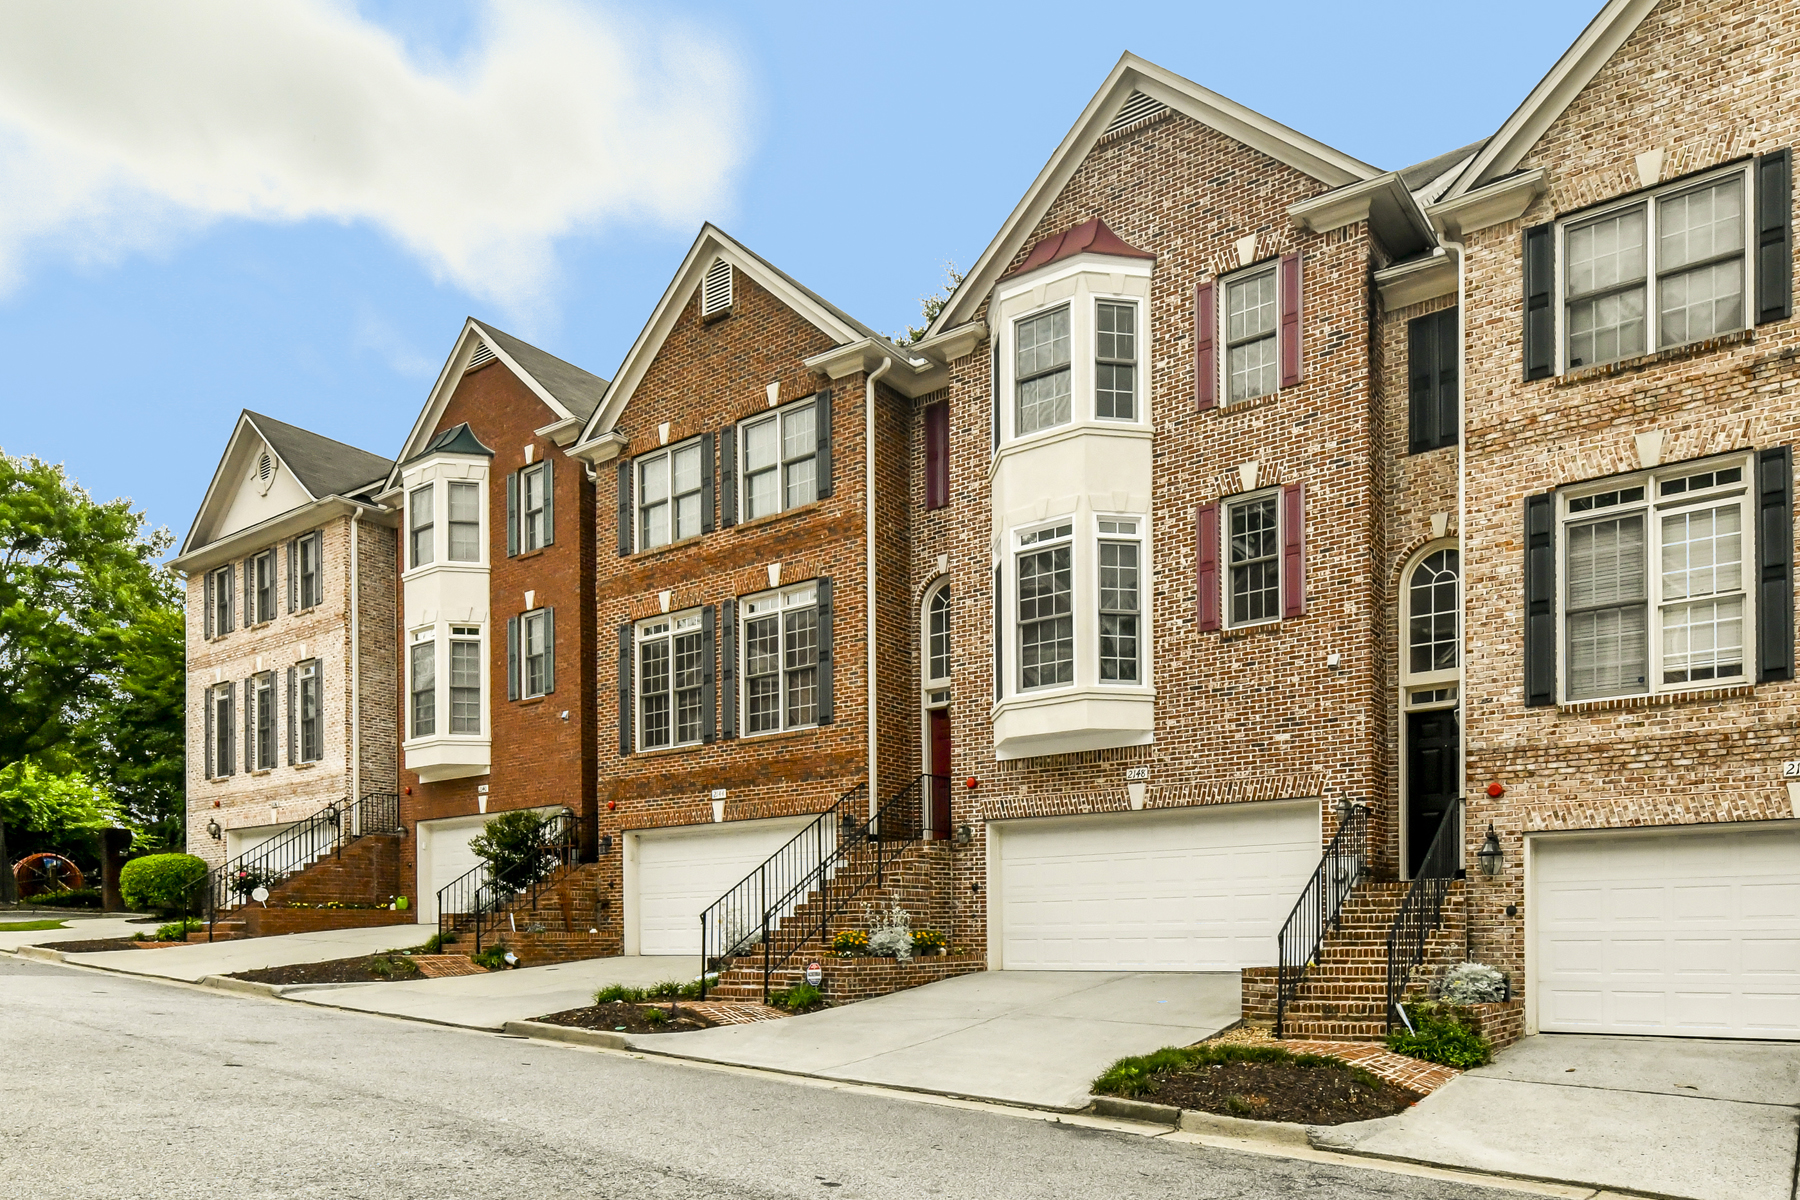 Townhouse for Sale at Beautiful Townhome in Brookhaven 2148 Briarwood Bluff NE Brookhaven, Georgia 30319 United States